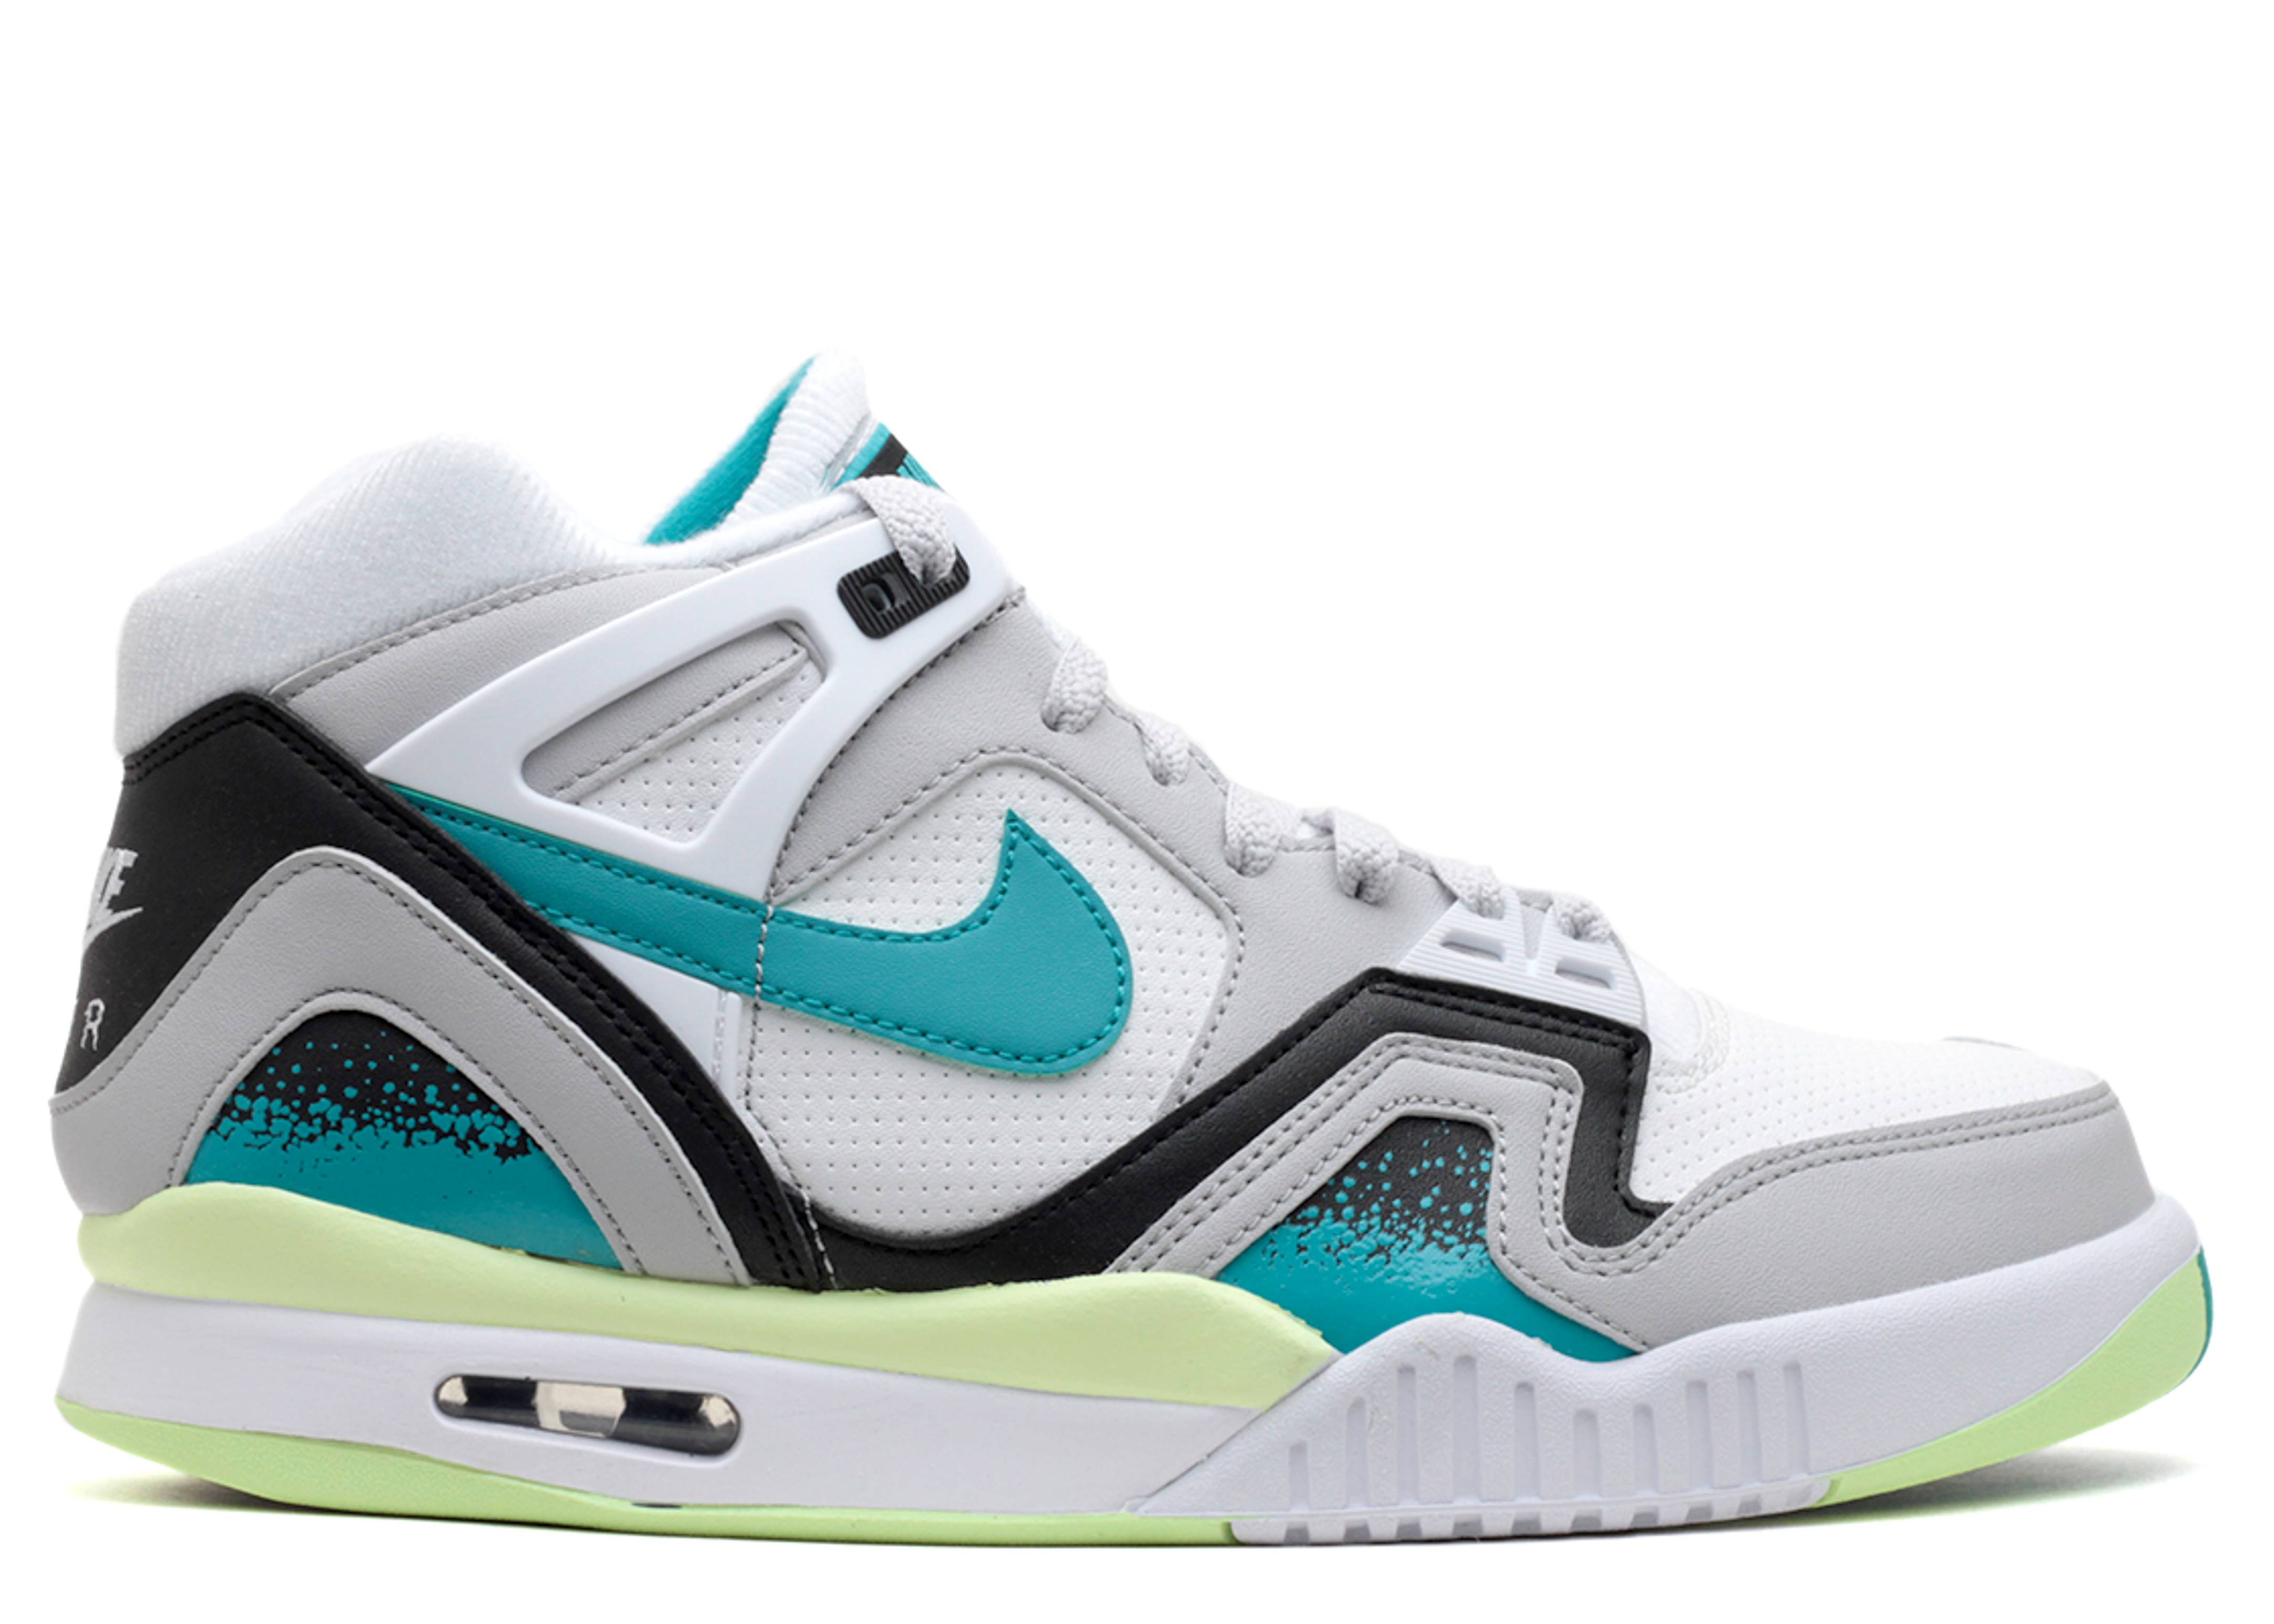 Air tech challenge 2 white turbo green natural grey black - Nike air tech challenge ...